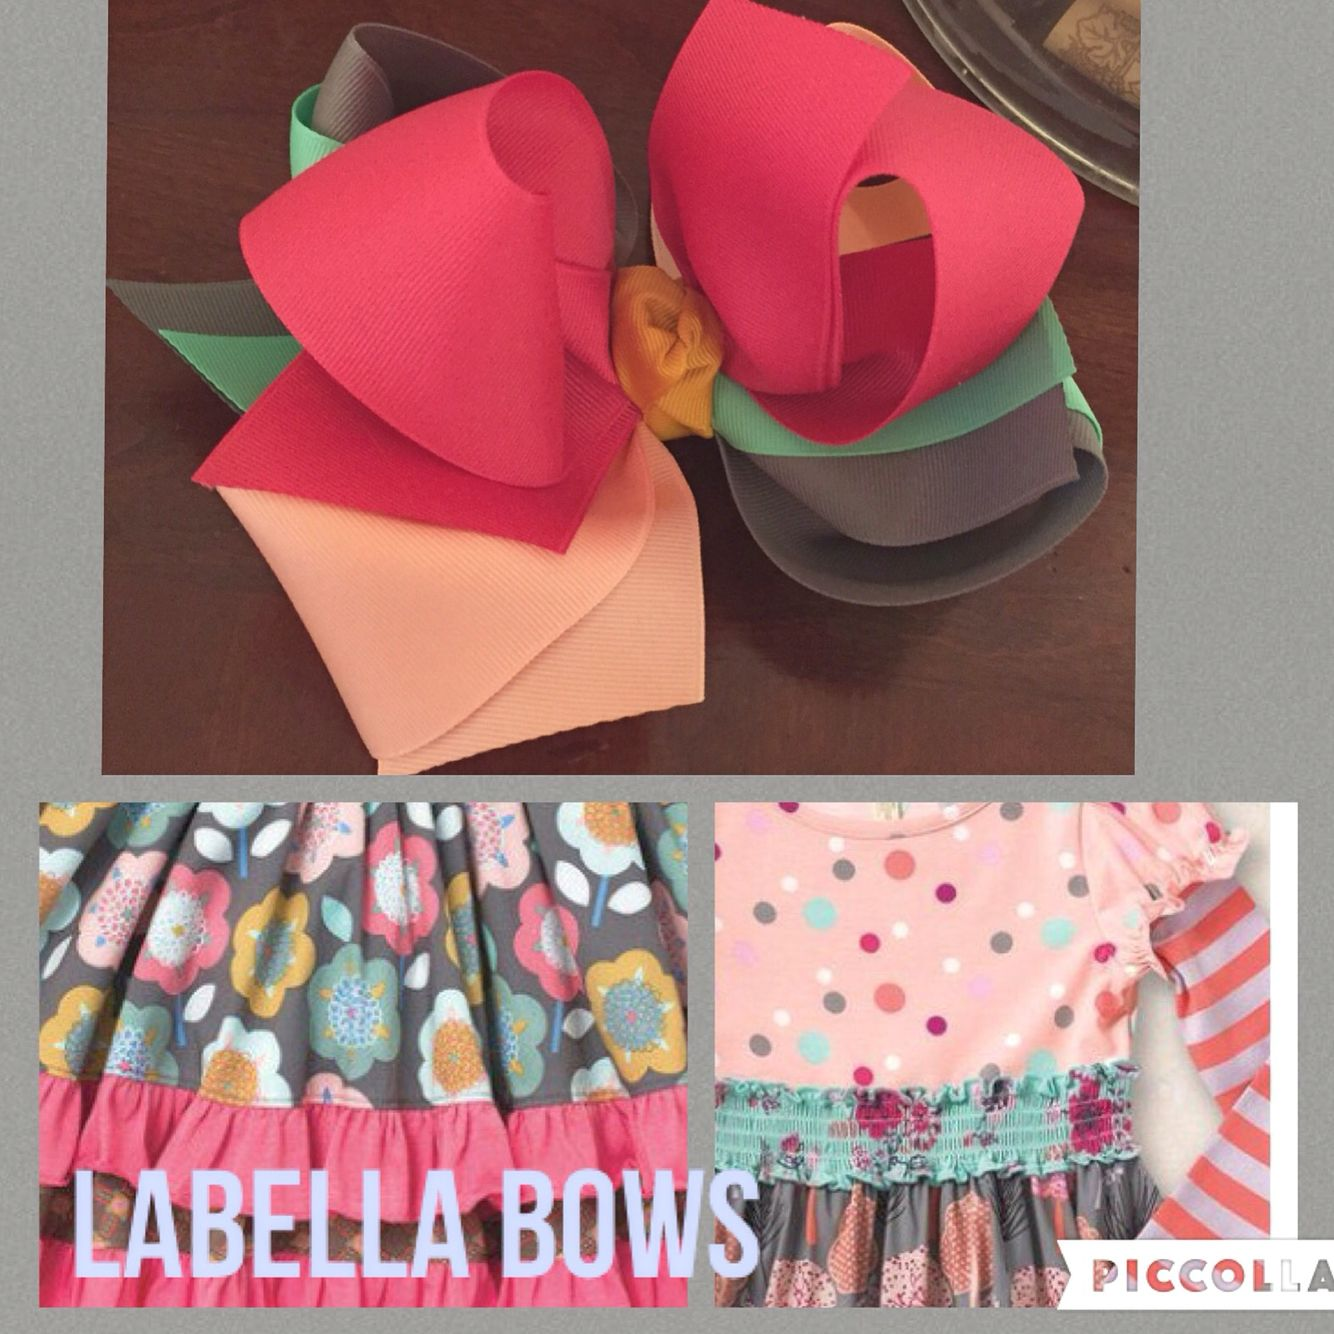 https://www.etsy.com/shop/LaBellaBowsBoutique?ref=s2-header-shopname